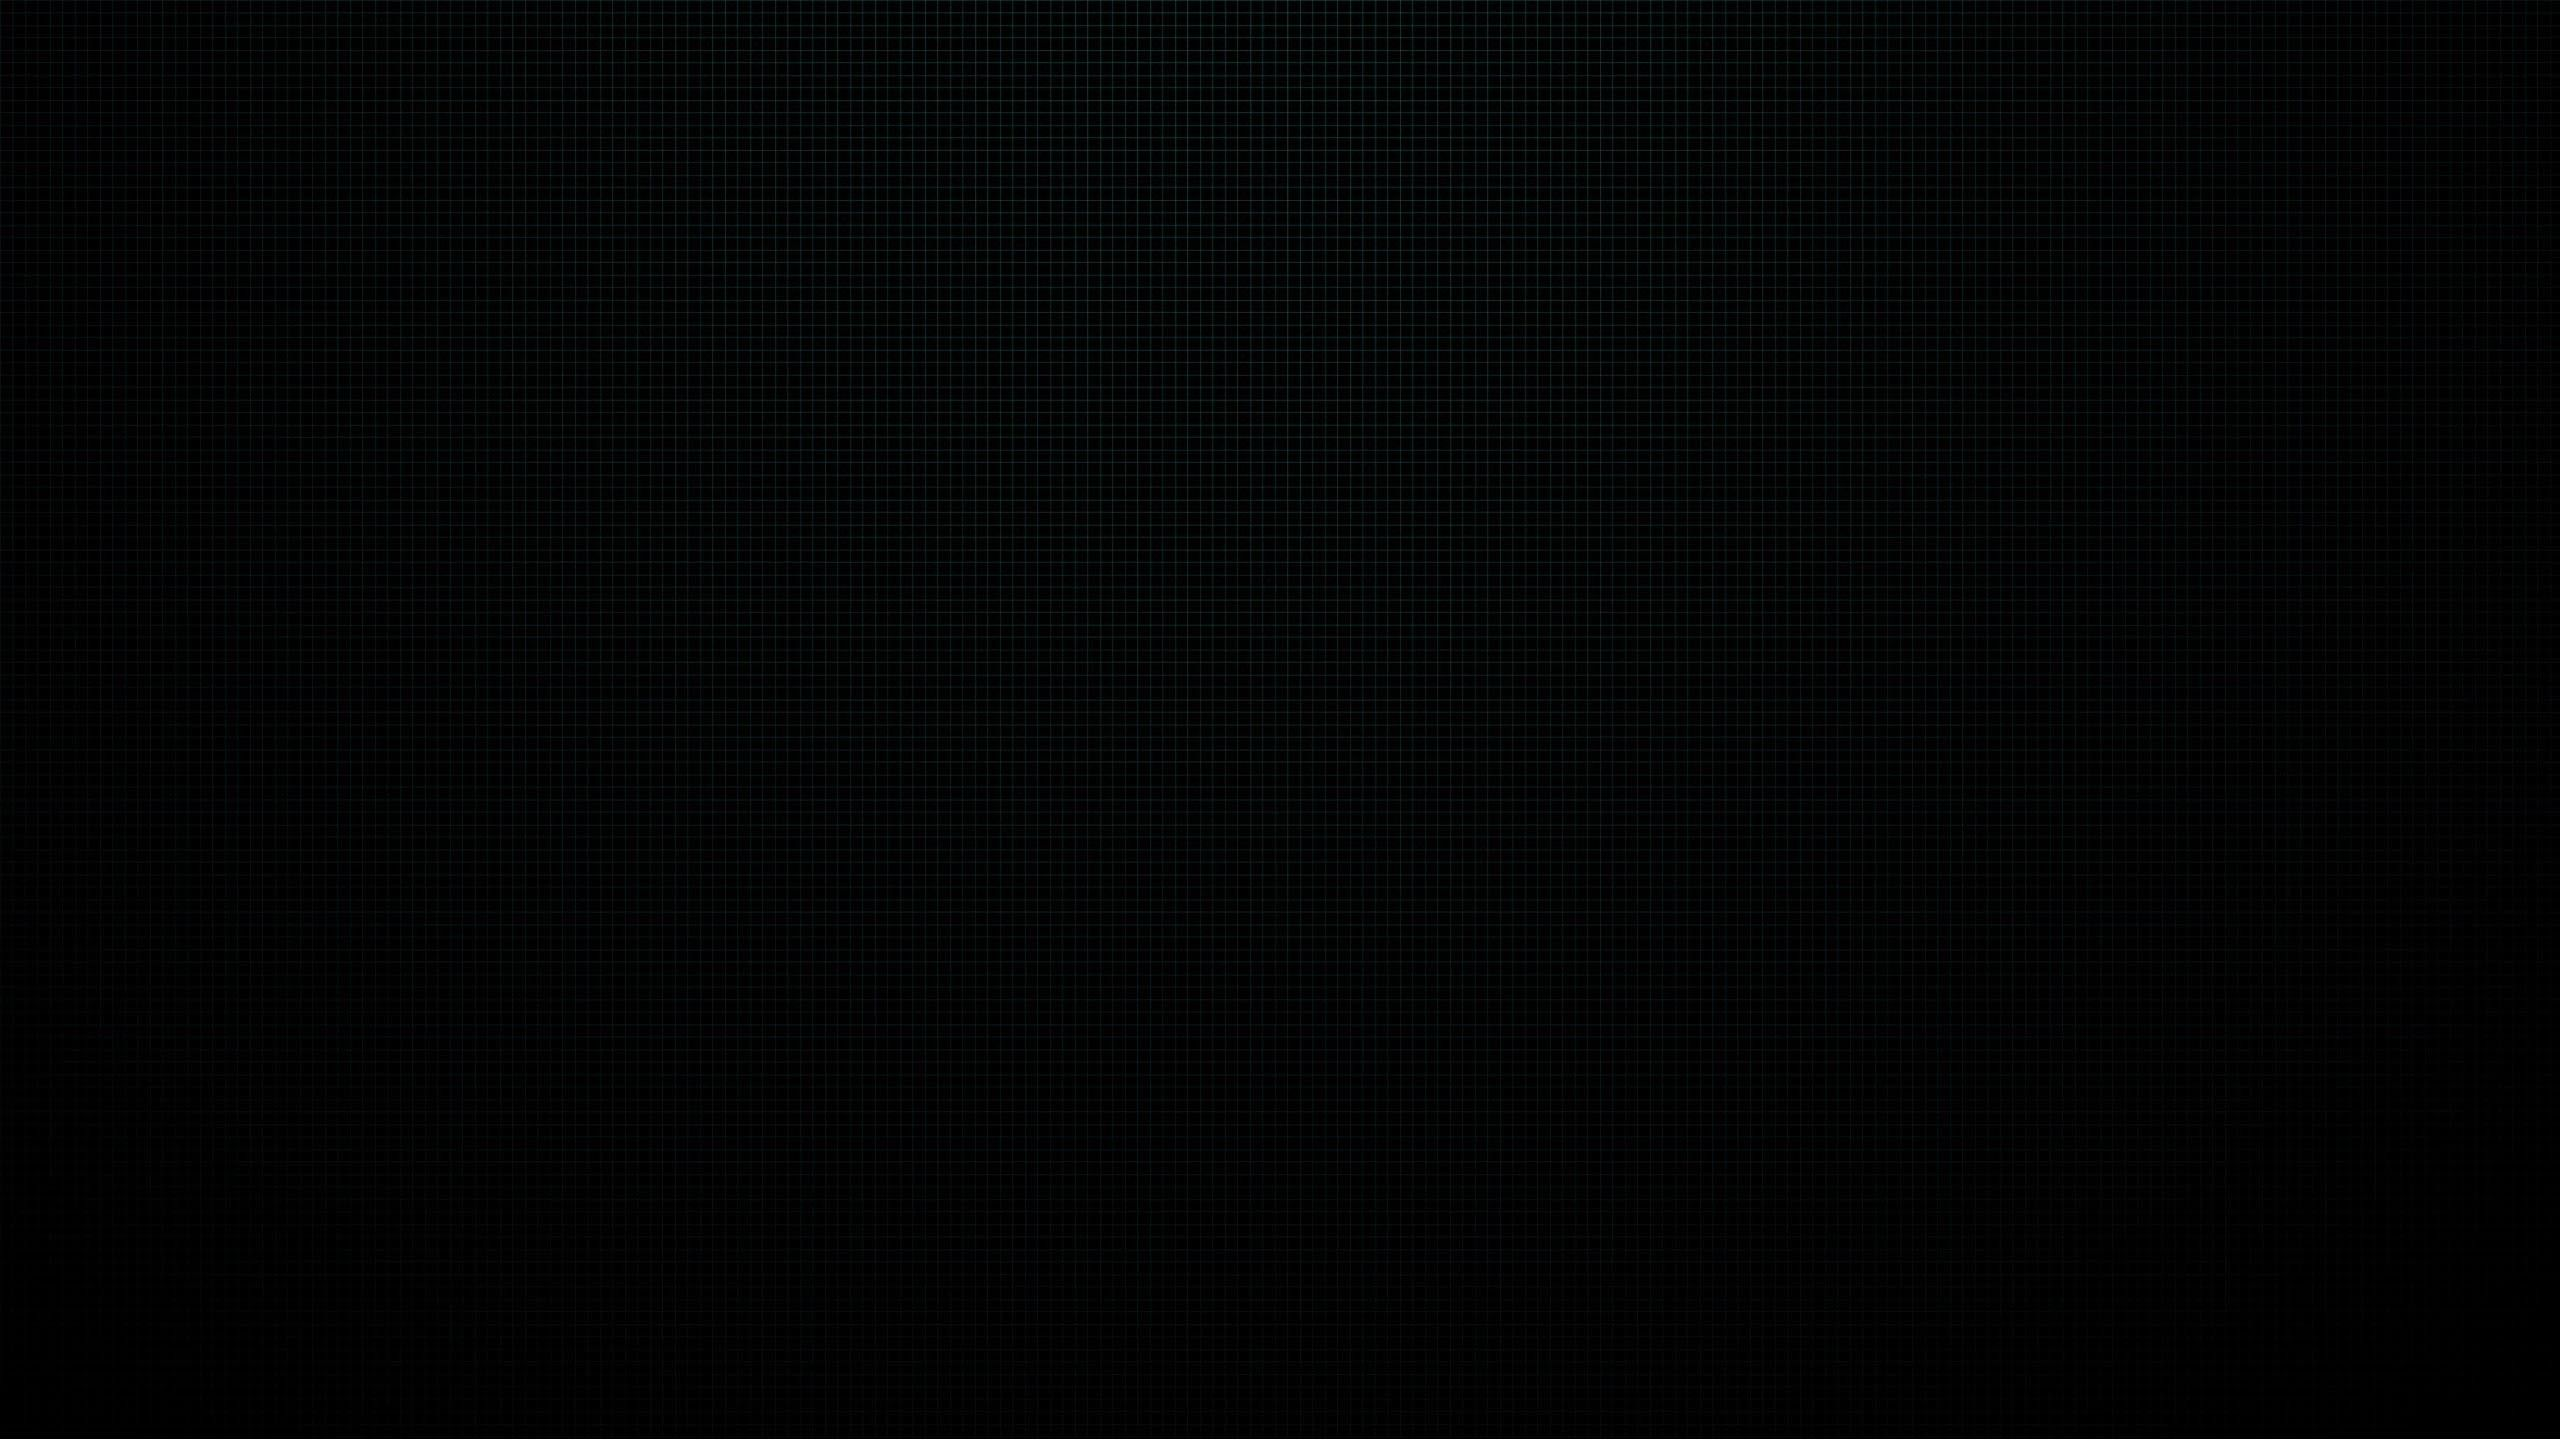 Black Screen Wallpaper Posted By Ethan Simpson